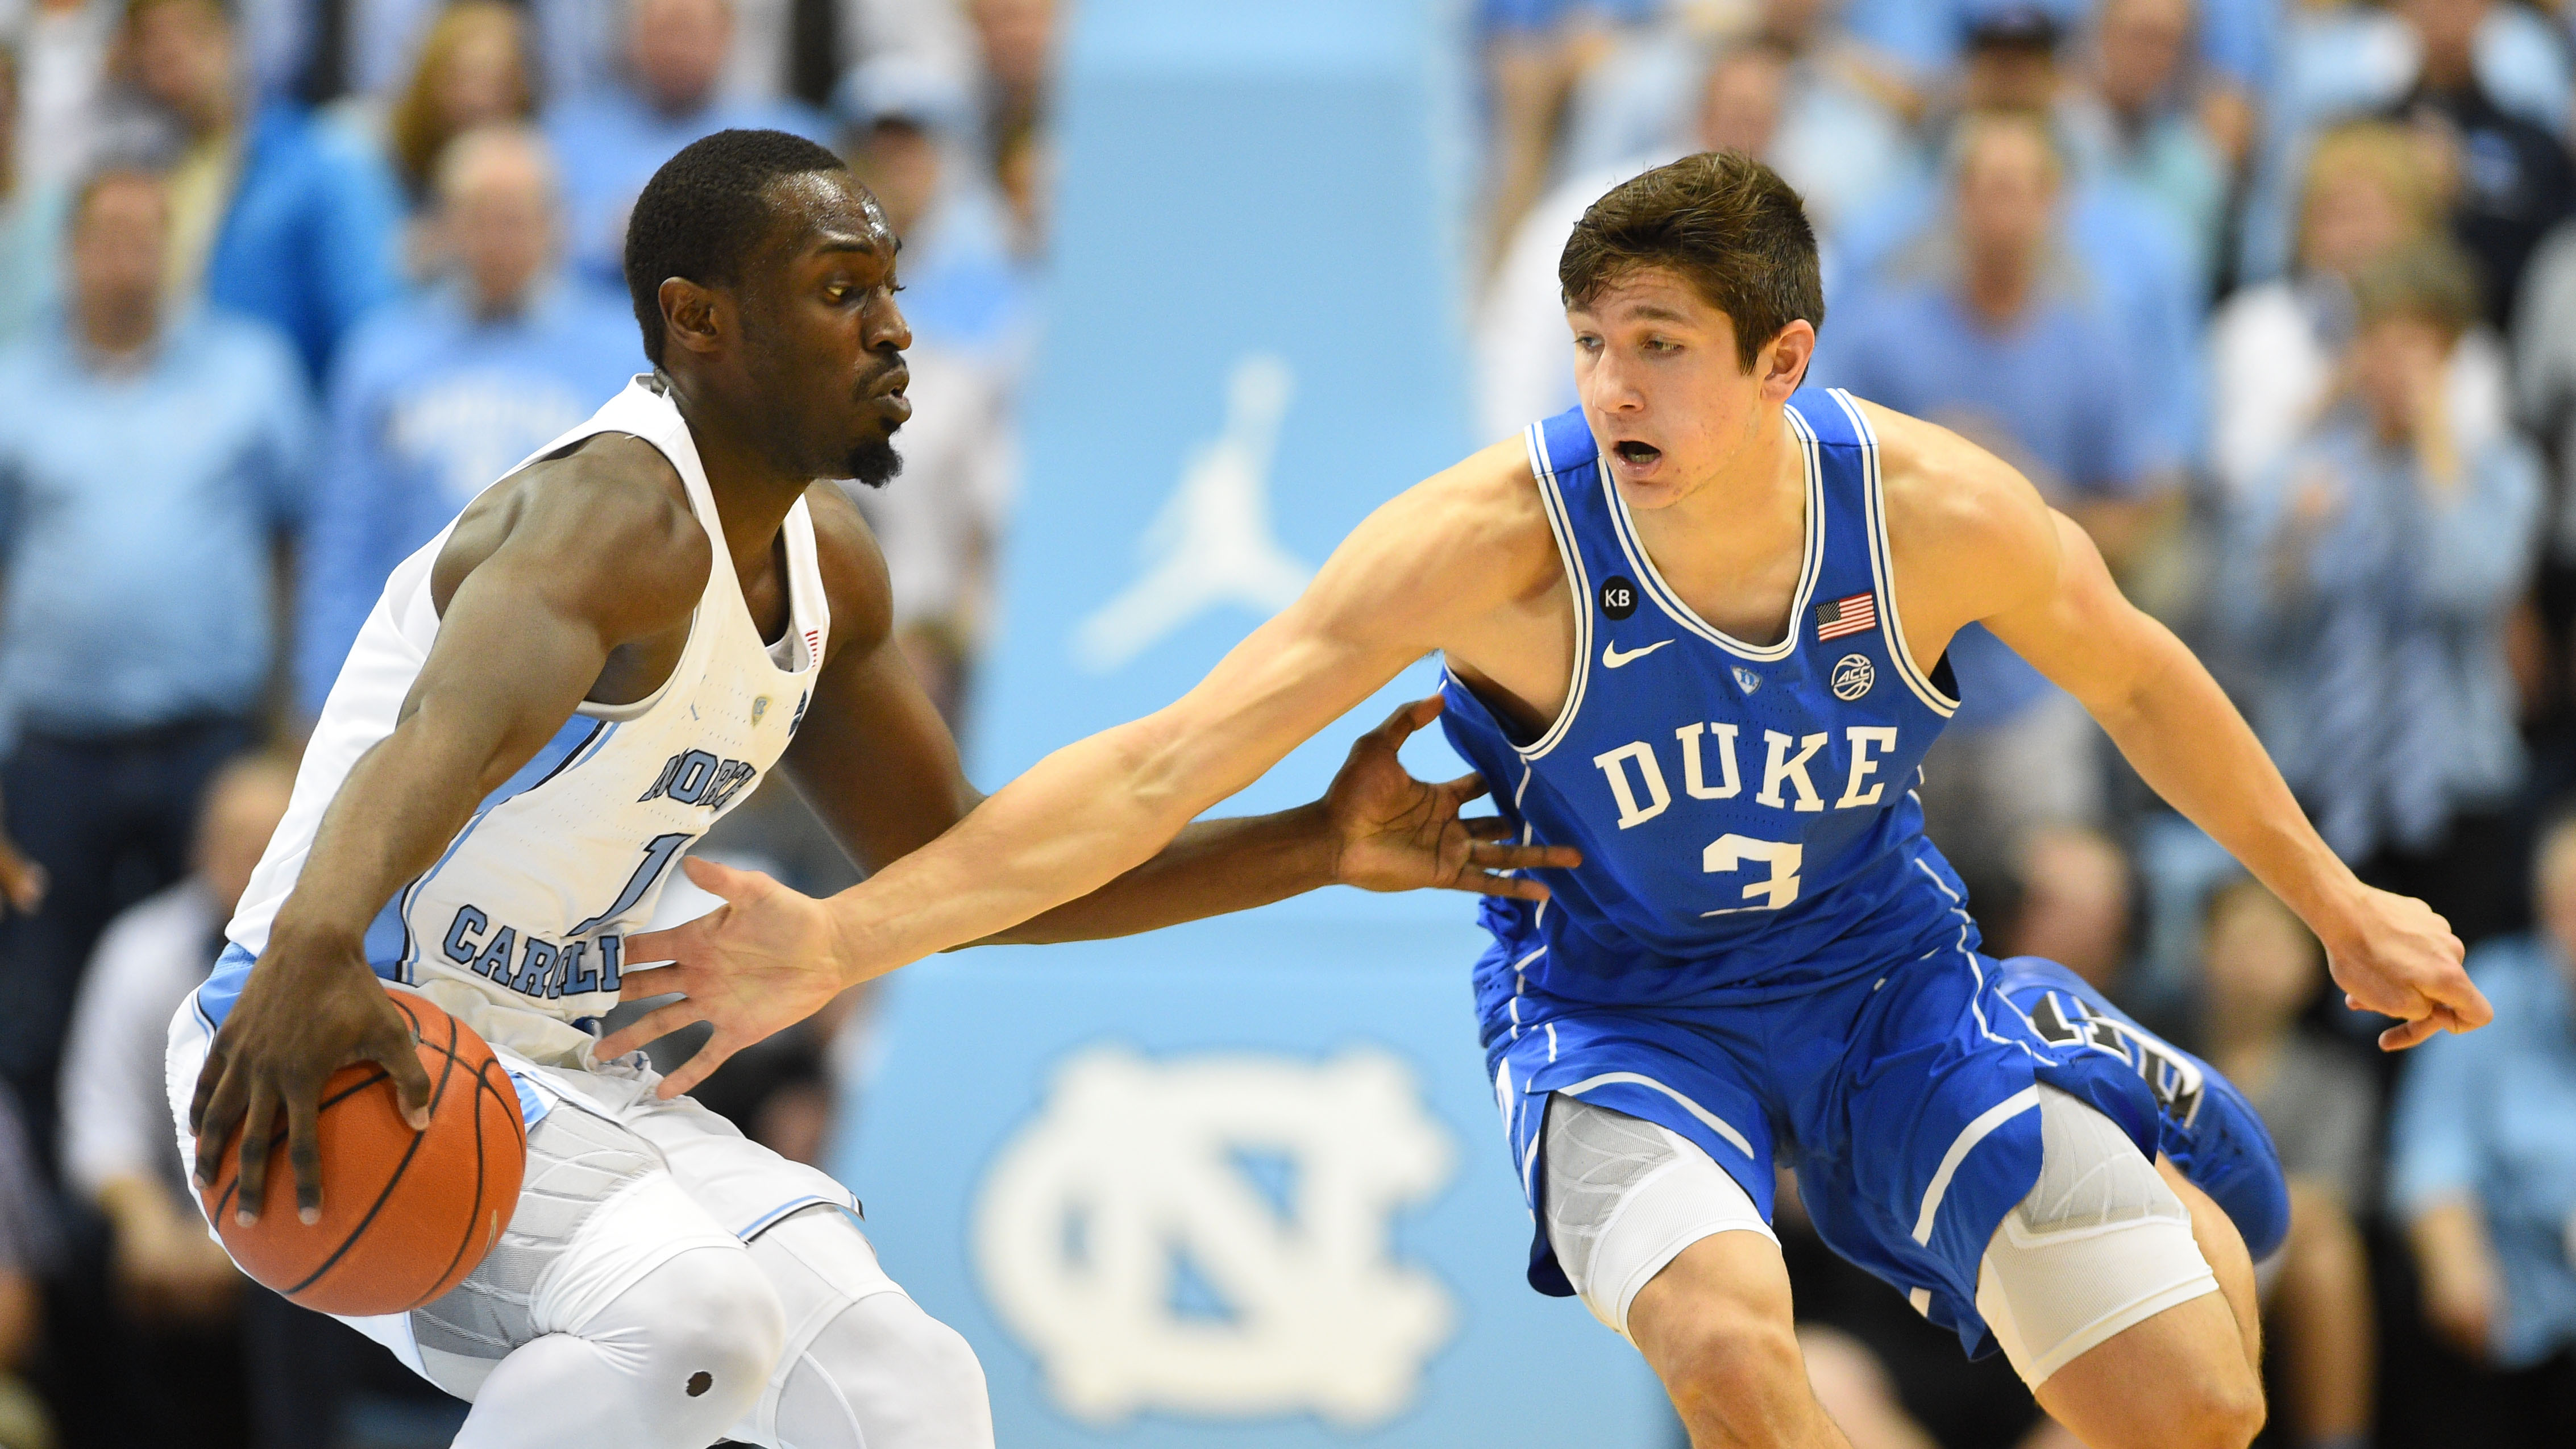 Versatility Leads Duke Past Louisville into ACC Tourney Semifinals